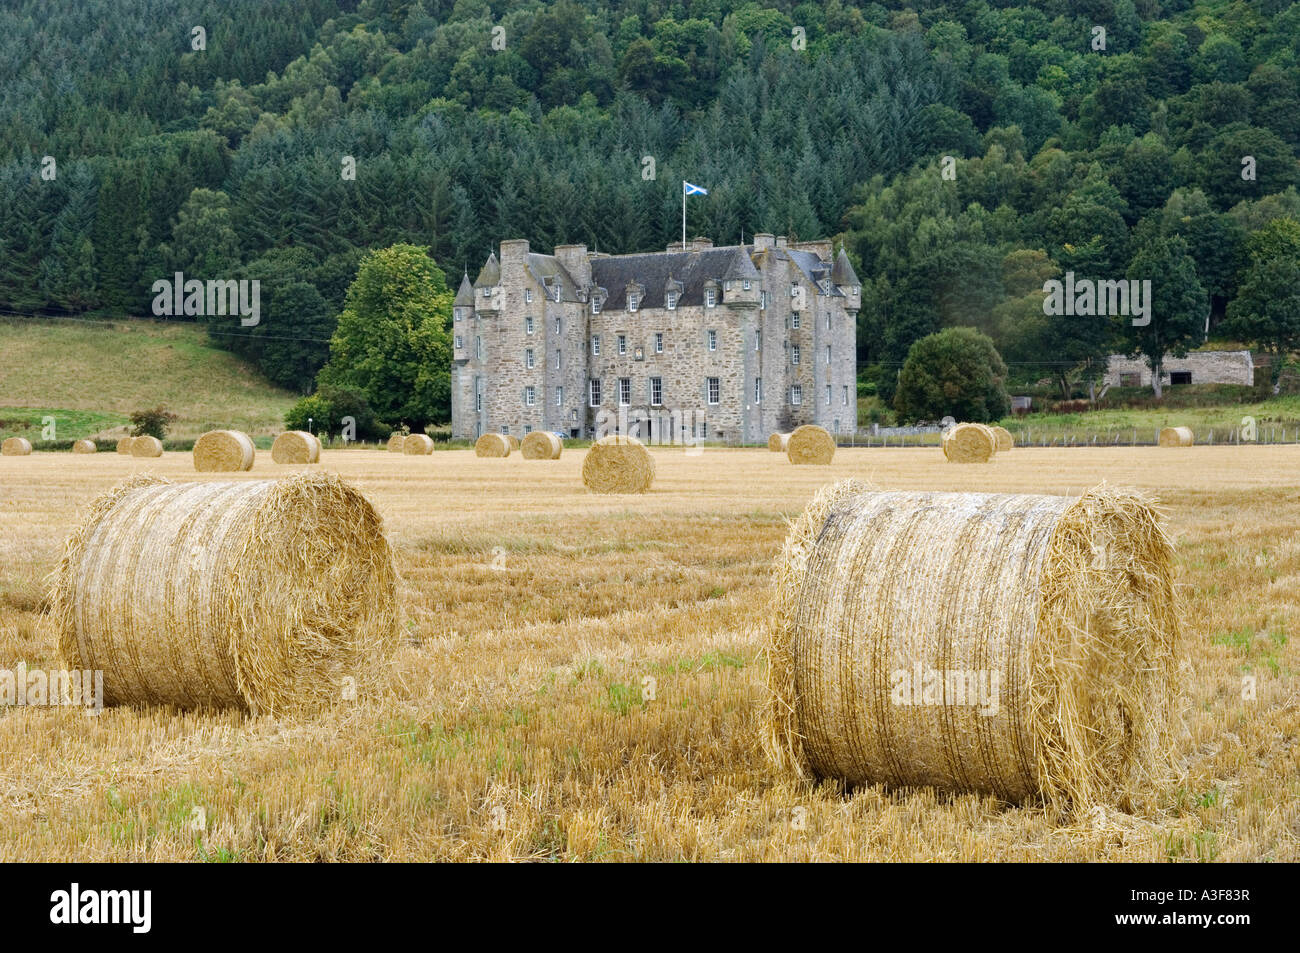 Castle Menzies Stands Amid Farm Field and Bales of Hay Near Weem Scotland - Stock Image